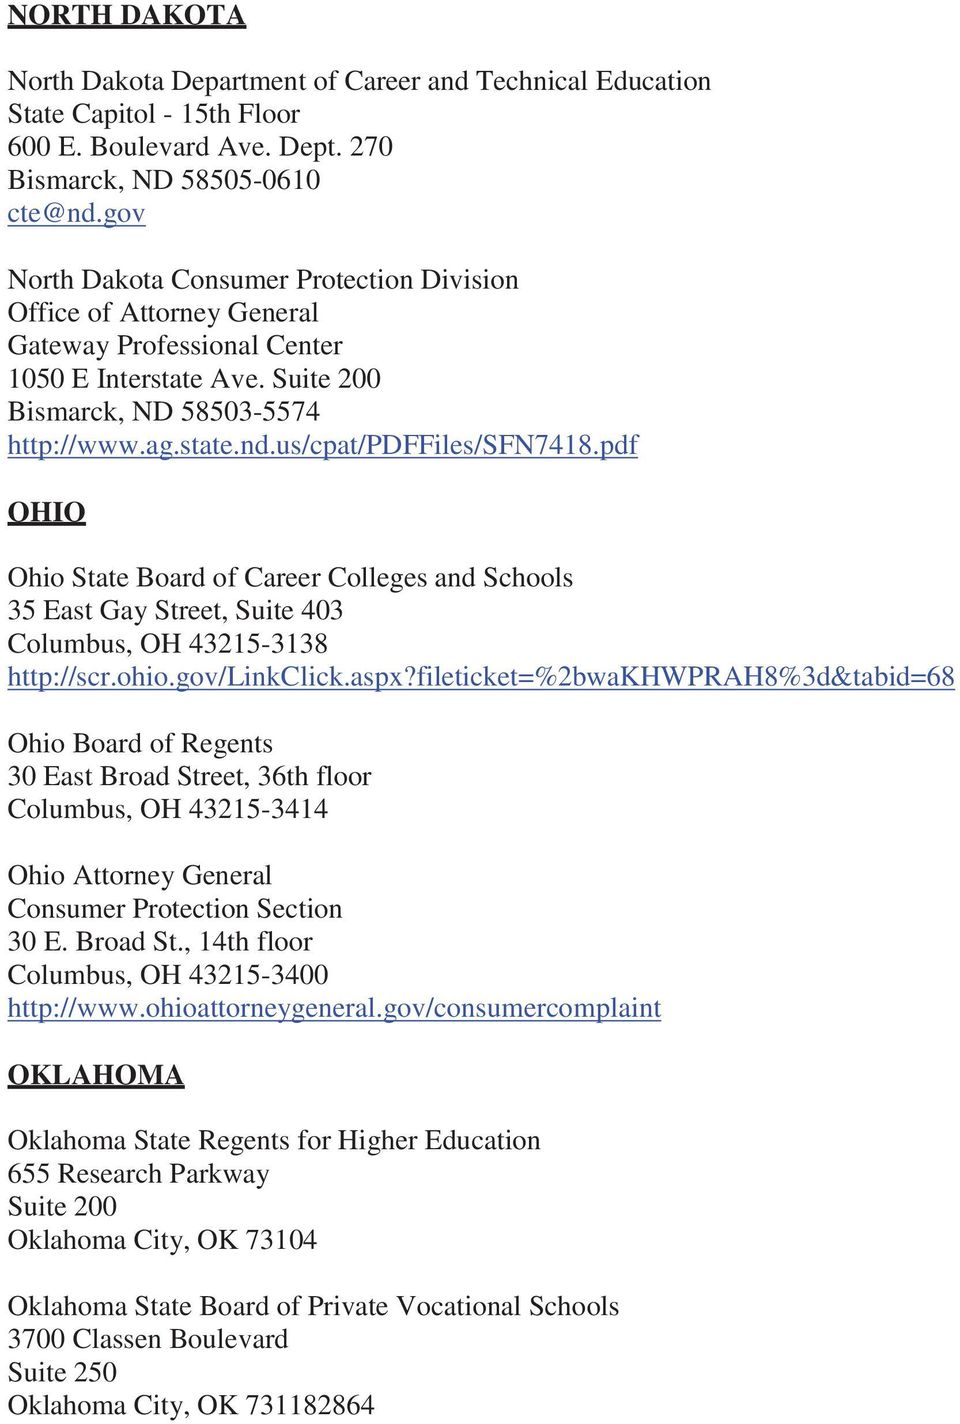 us/cpat/pdffiles/sfn7418.pdf OHIO Ohio State Board of Career Colleges and Schools 35 East Gay Street, Suite 403 Columbus, OH 43215-3138 http://scr.ohio.gov/linkclick.aspx?